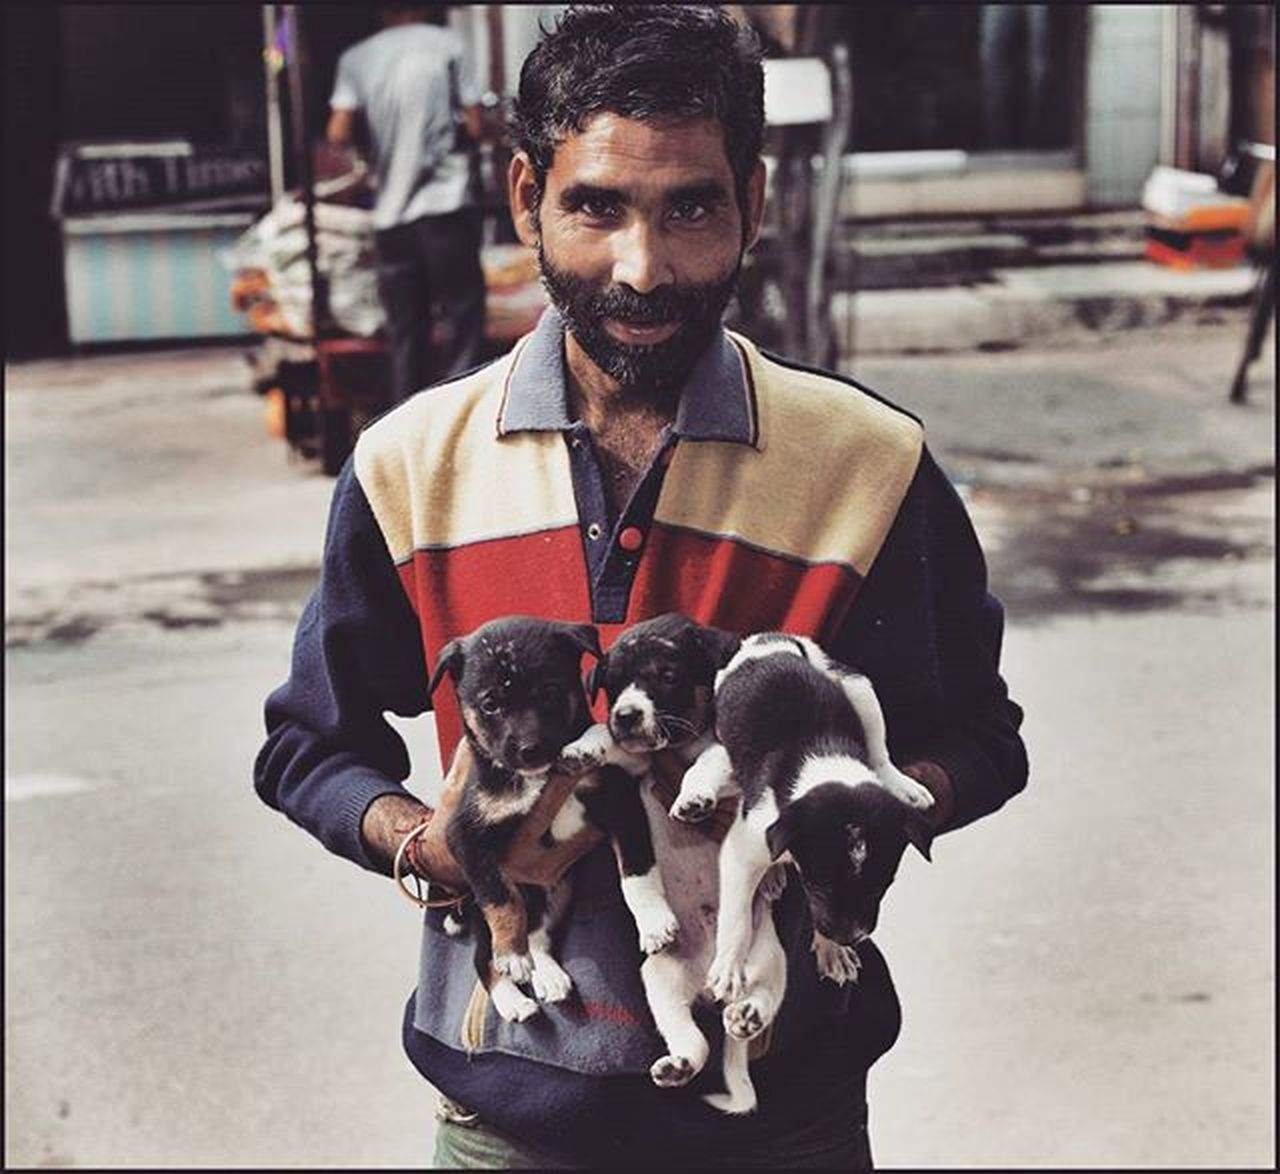 The dog man. Found this guy at the farmers market taking care of 10 puppies. It seems the only thing you need to help others is a big heart, rest will follow. Clicked at Cooch Behar, West Bengal, India. WestBengal Dog Dogs Streetphotography Street Puppies Puppiesofinstagram Punephotographylovers Puneclickarts Puneinstagrammers Betterphotography Lonelyplanetindia Lonelyplanet Generous Begenerous @betterphotography @lonelyplanetindia @puneclickarts @puneinstagrammers Indiapictures Indiaphotosociety Dogman Canonlens Canon 50mm Pictureoftheday Travellerslife Travellers @bharatkatha _soi @streetlife_award